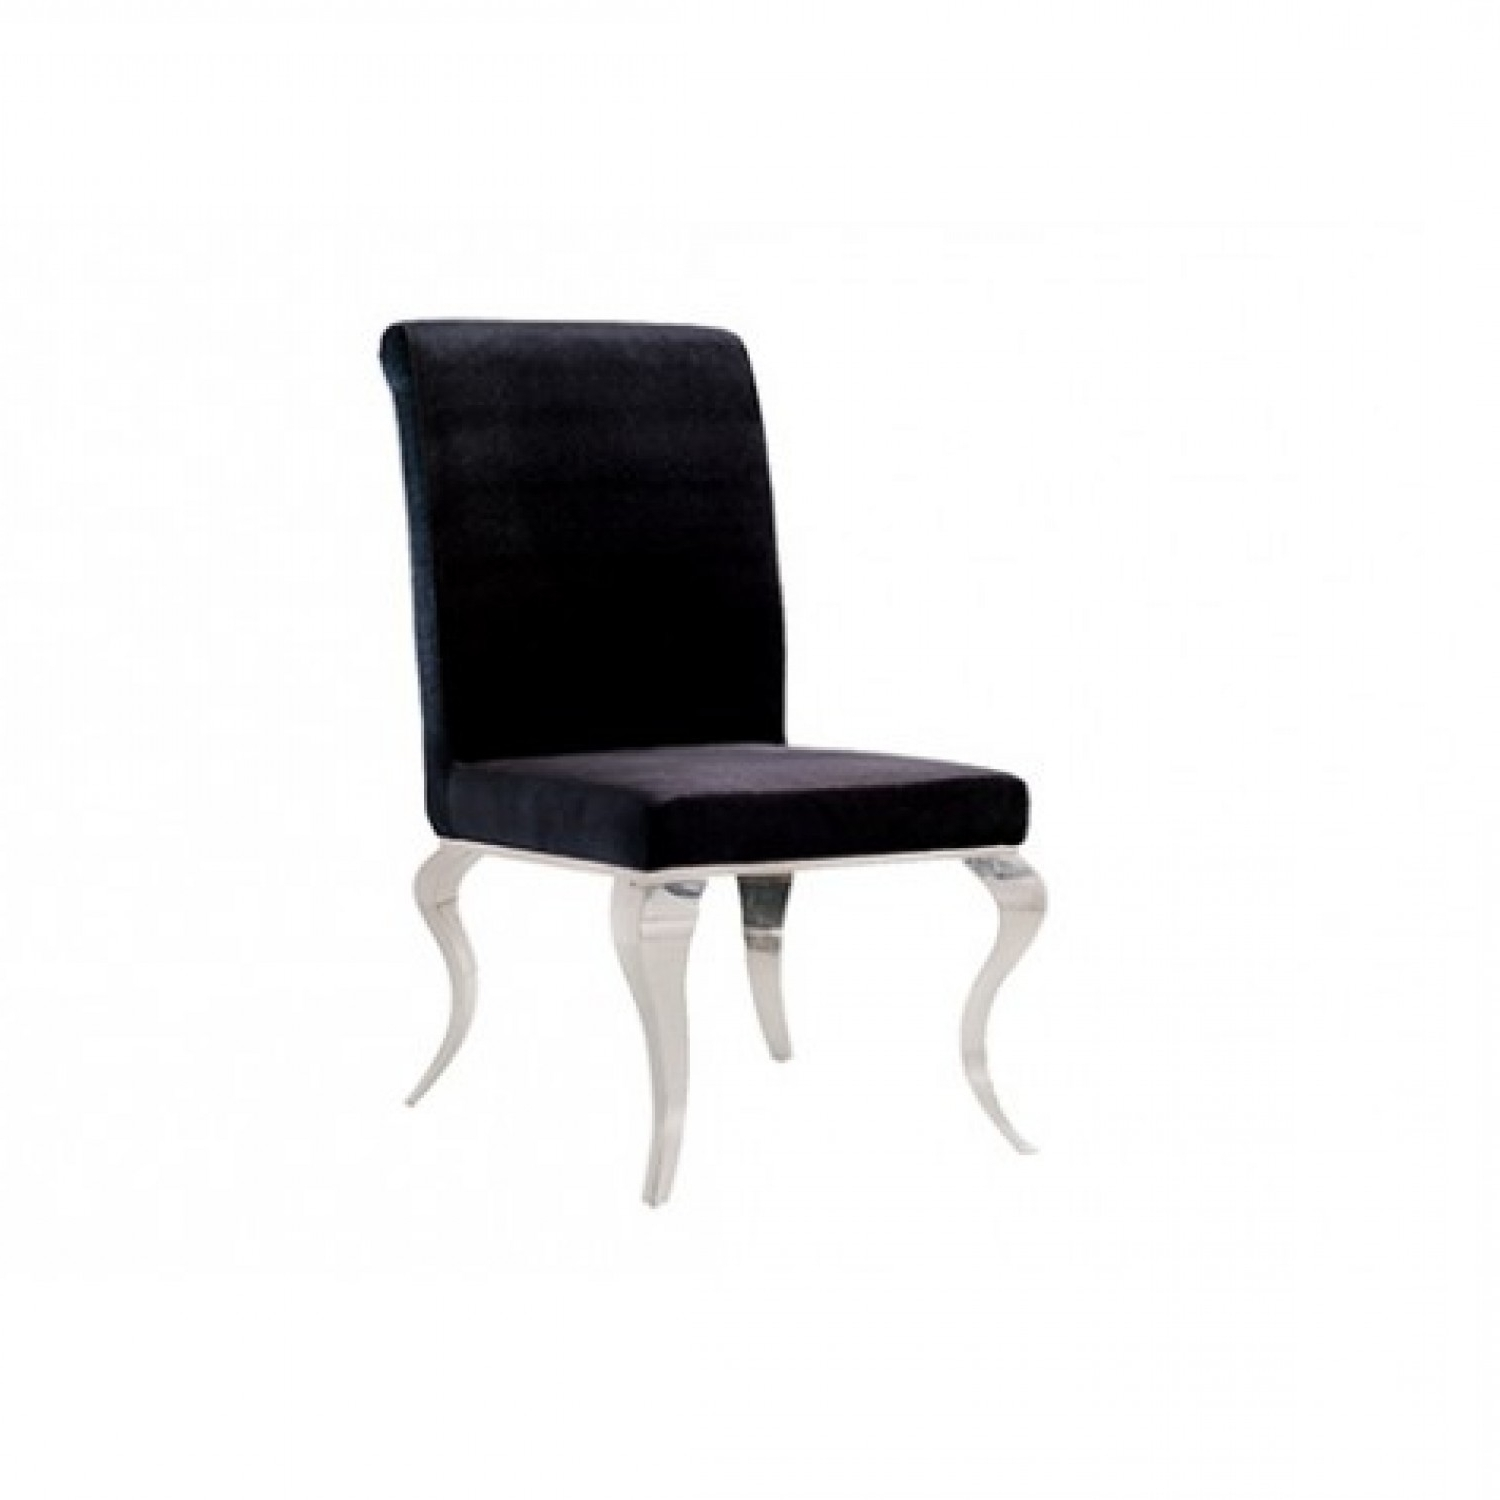 Stylish Dining Chairs Intended For Latest Louis Dining Chair In Black Velvet – Stylish Dining (View 13 of 25)